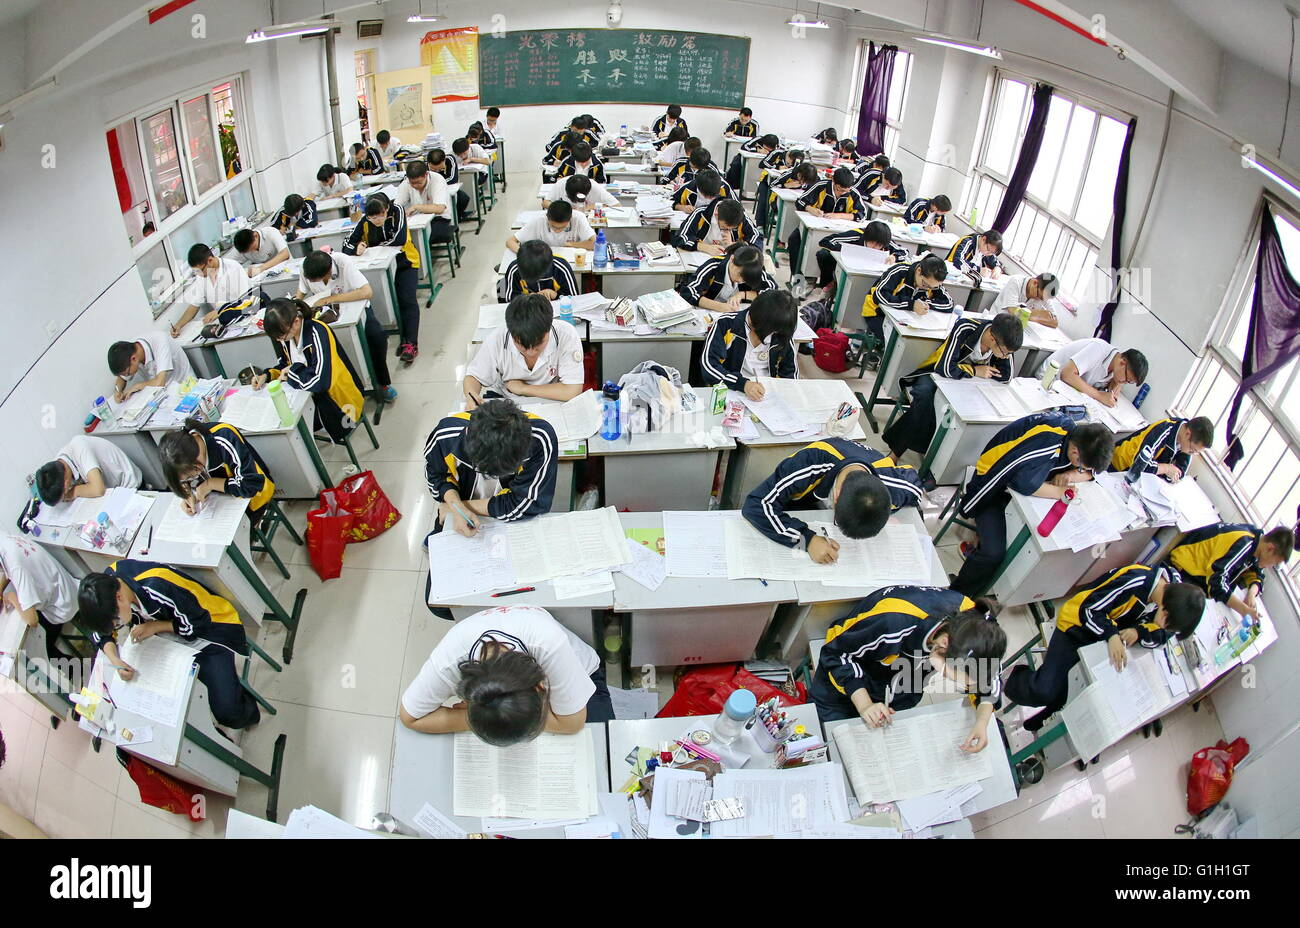 (160515) -- HENGSHUI, May 15, 2016 (Xinhua) -- Senior high school students study to prepare for the college entrance - Stock Image